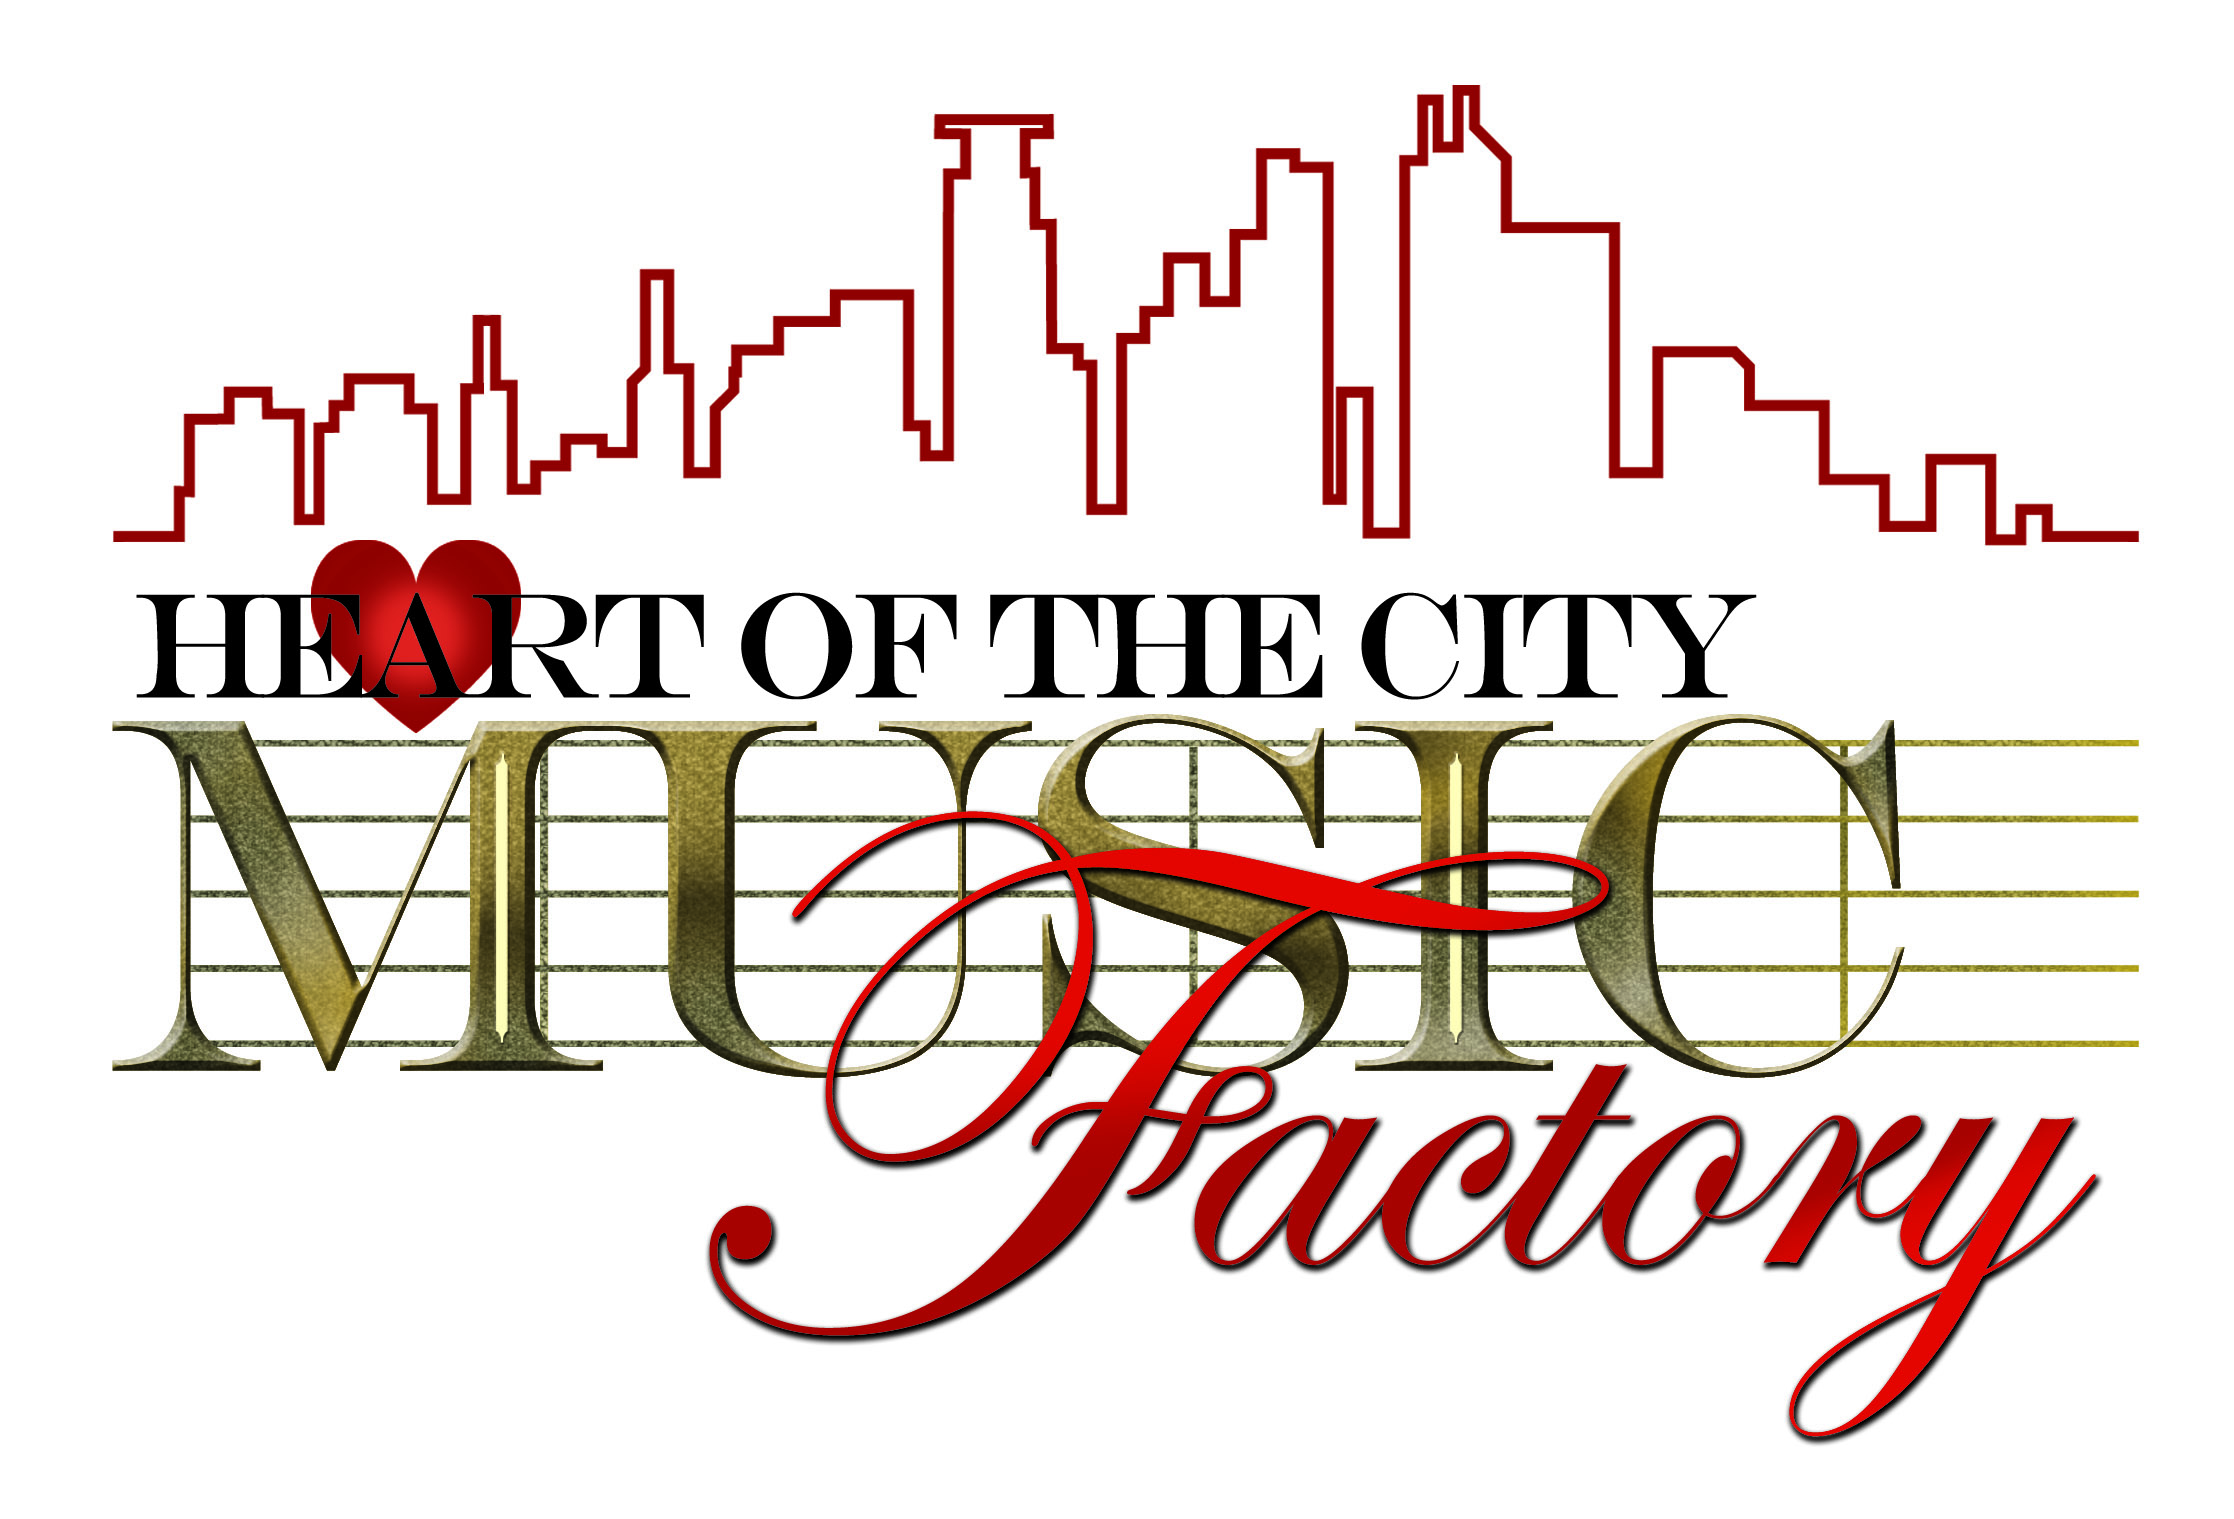 Heart of The City Music factory